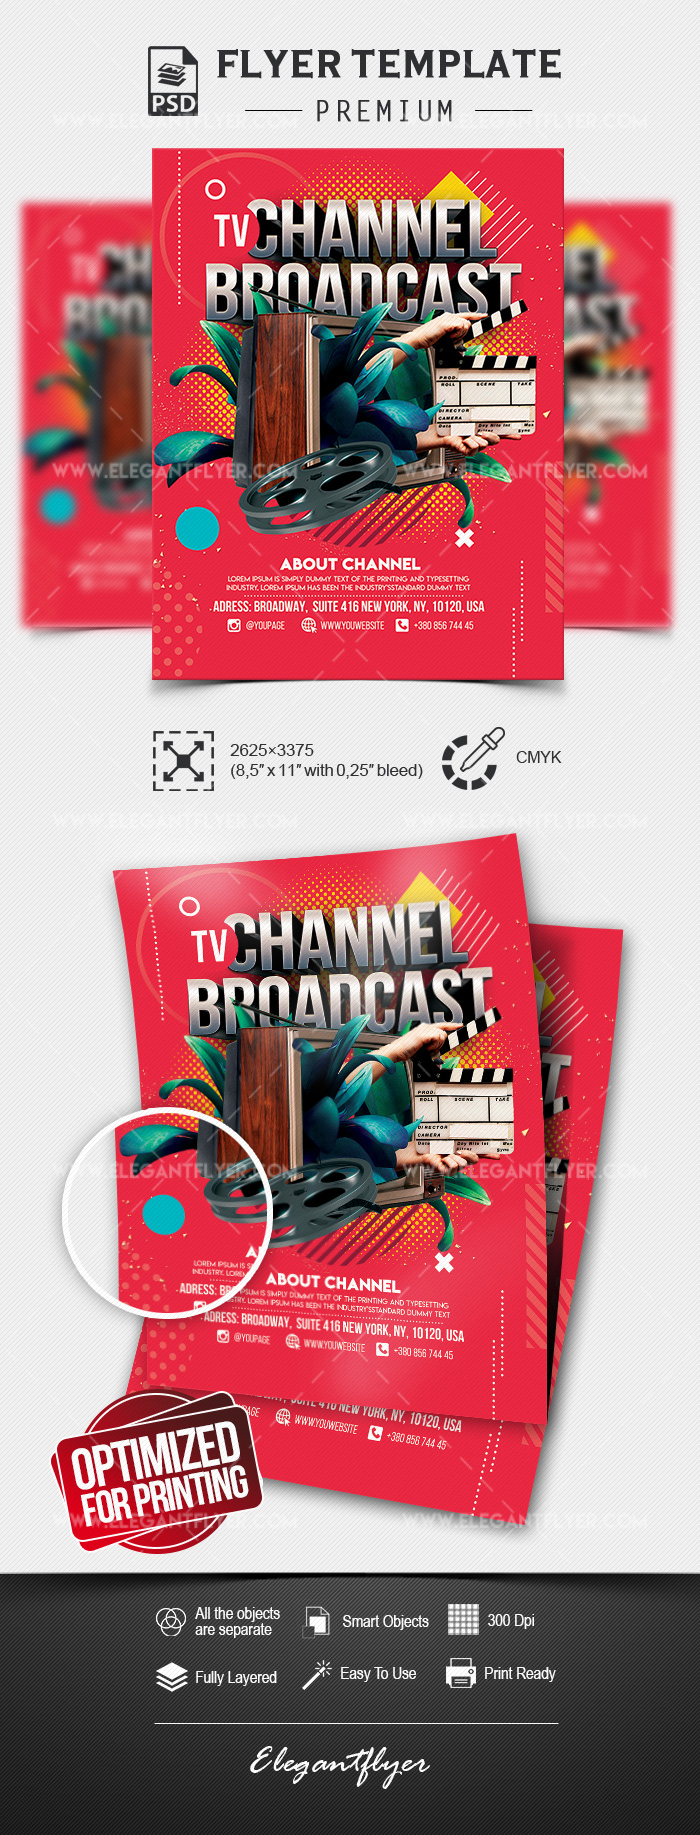 TV Channel Broadcast – Premium Flyer Template in PSD